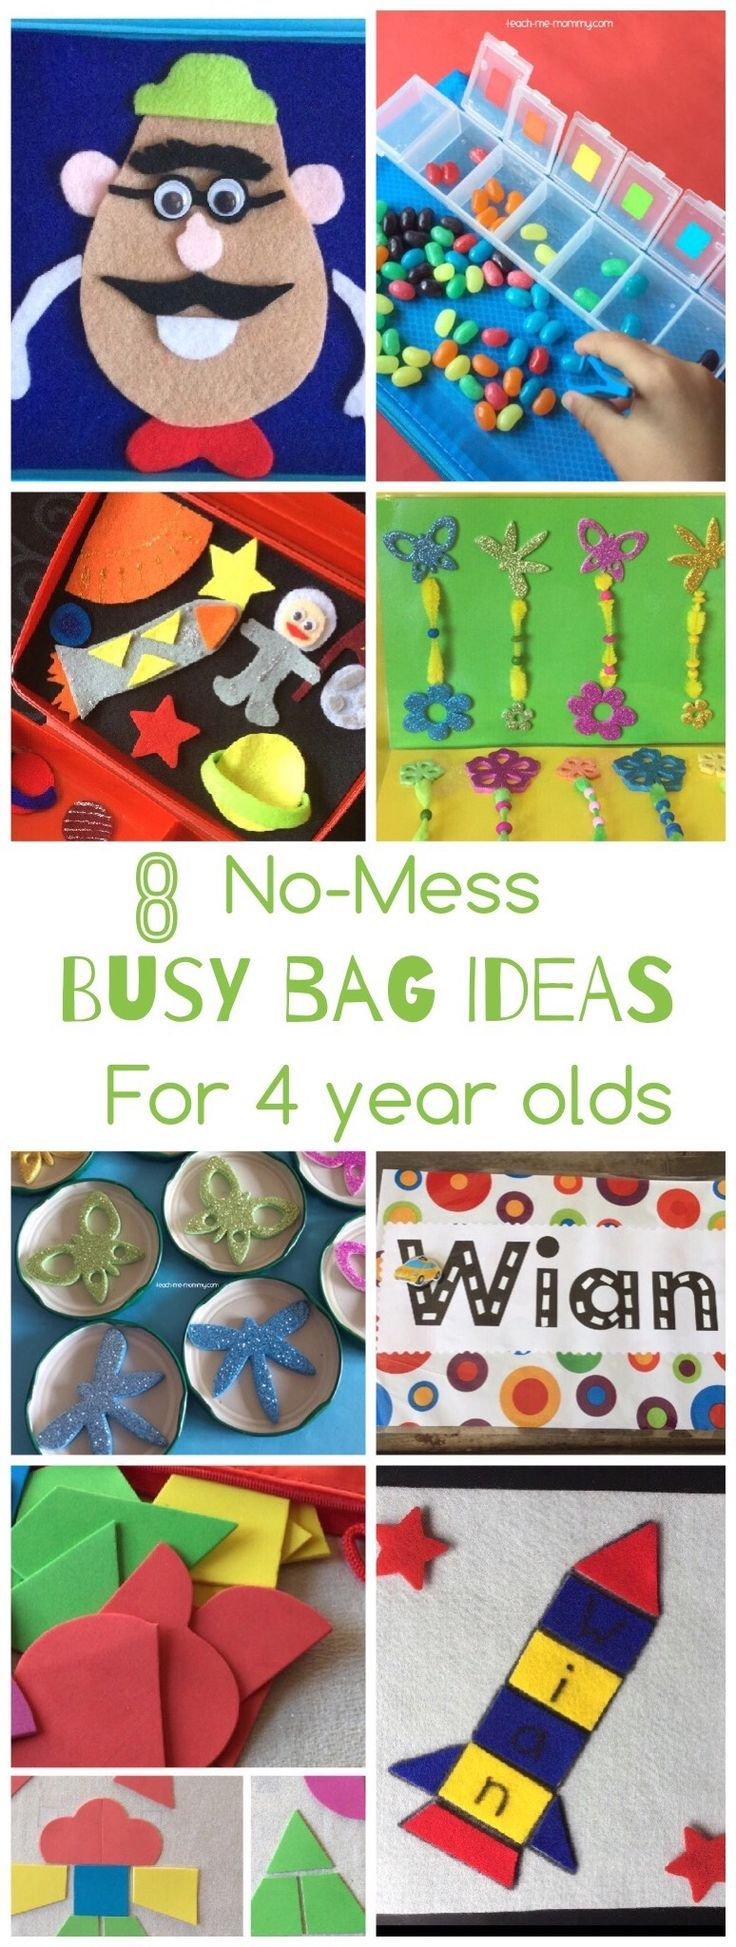 Co coloring games for 4 year olds online - No Mess Busy Bag Ideas For 4 Year Olds